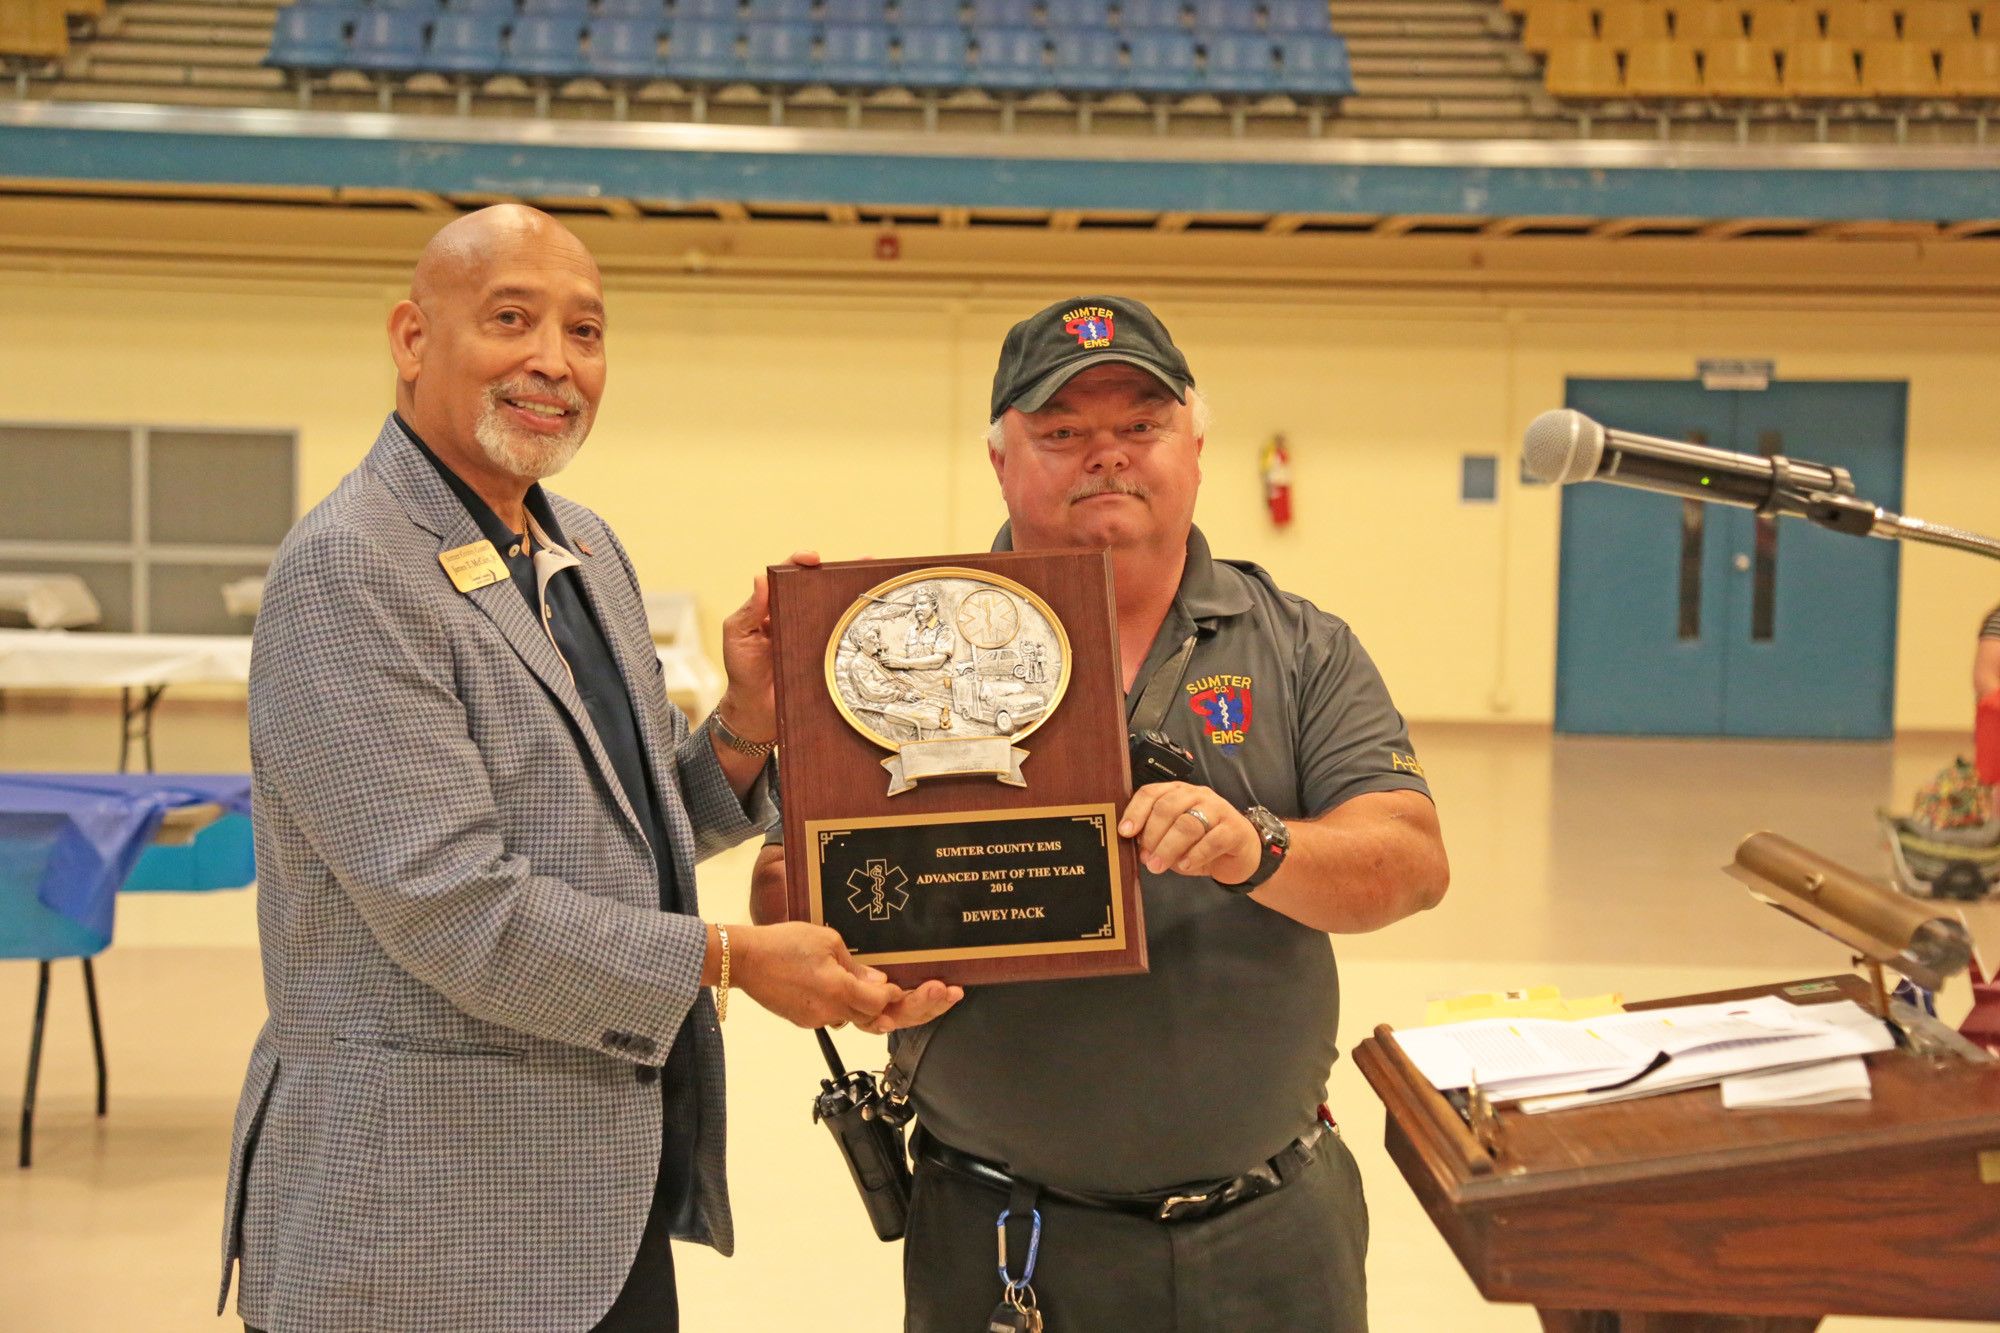 Sumter County Council Chairman James T. McCain Jr., left, hands a plaque to Dewey Pack, named Advanced EMT of the Year at 2017 Sumter County Awards Banquet at Sumter County Civic Center on May 11.